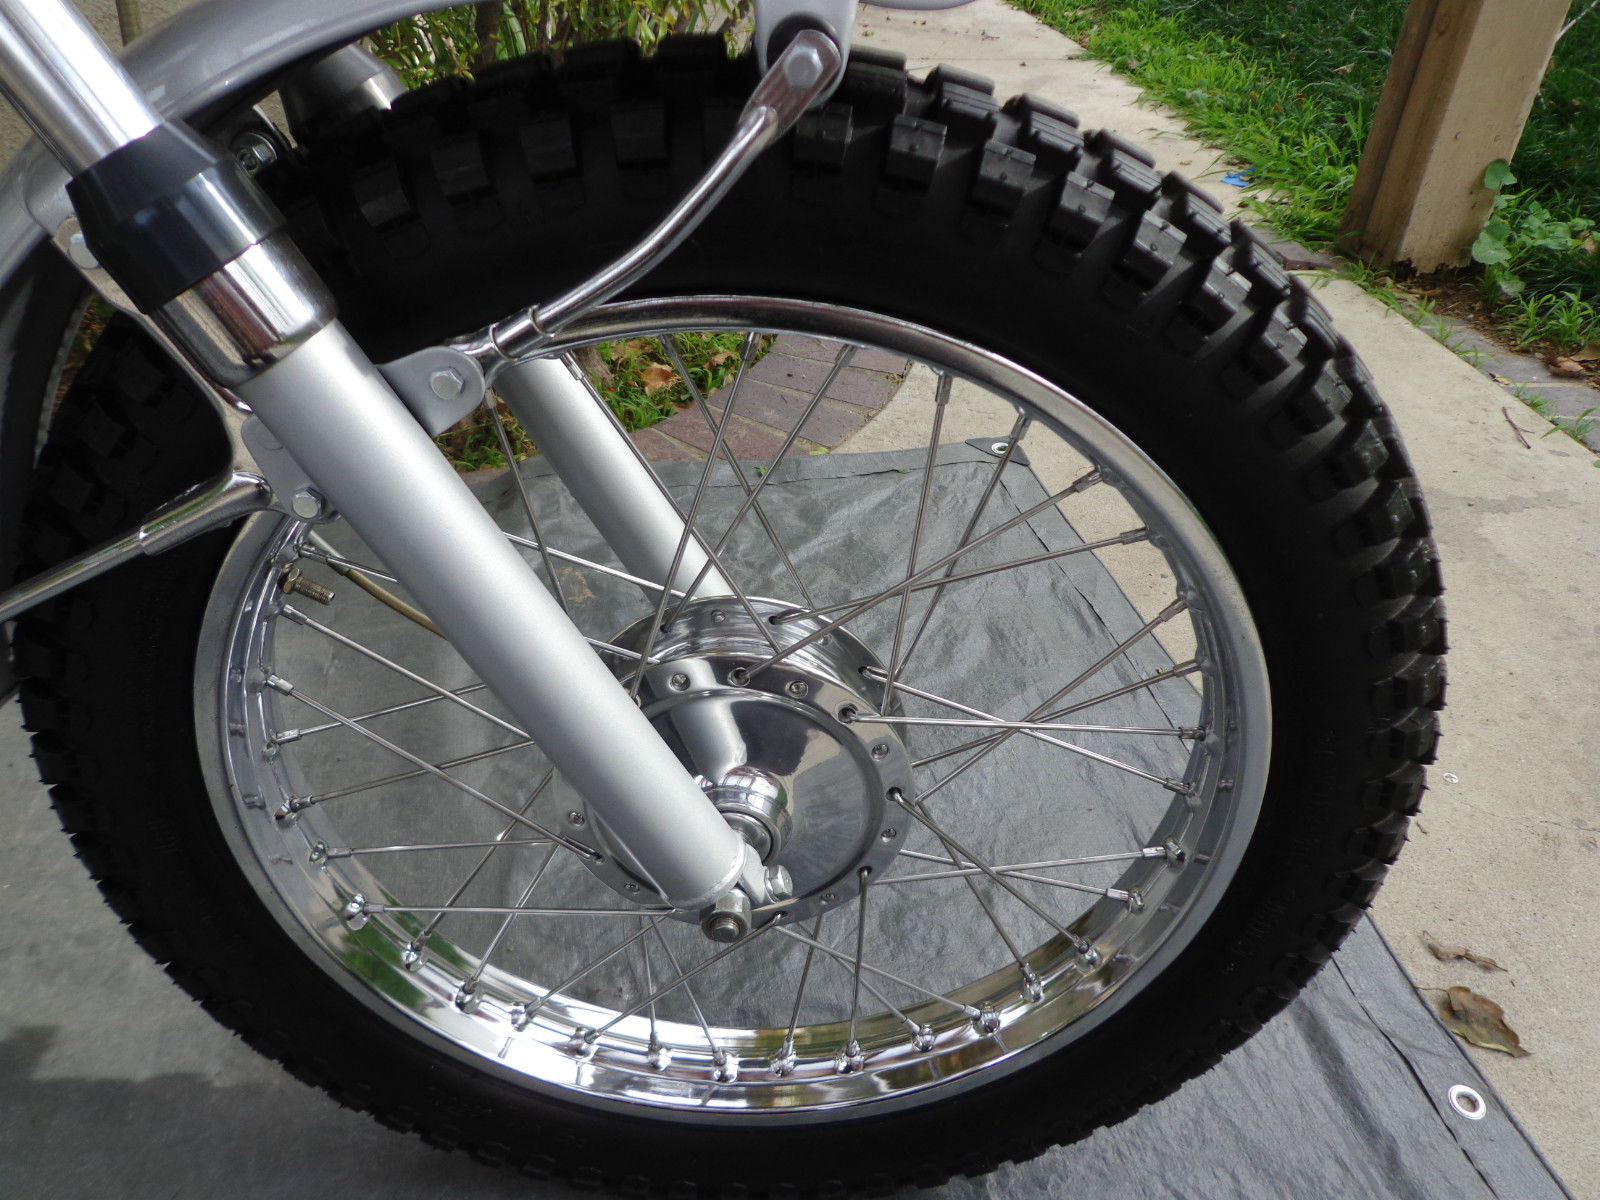 Yamaha CT1 175 Enduro - 1971 - Front Forks, Front Wheel, Mudguard Stays and Fender.